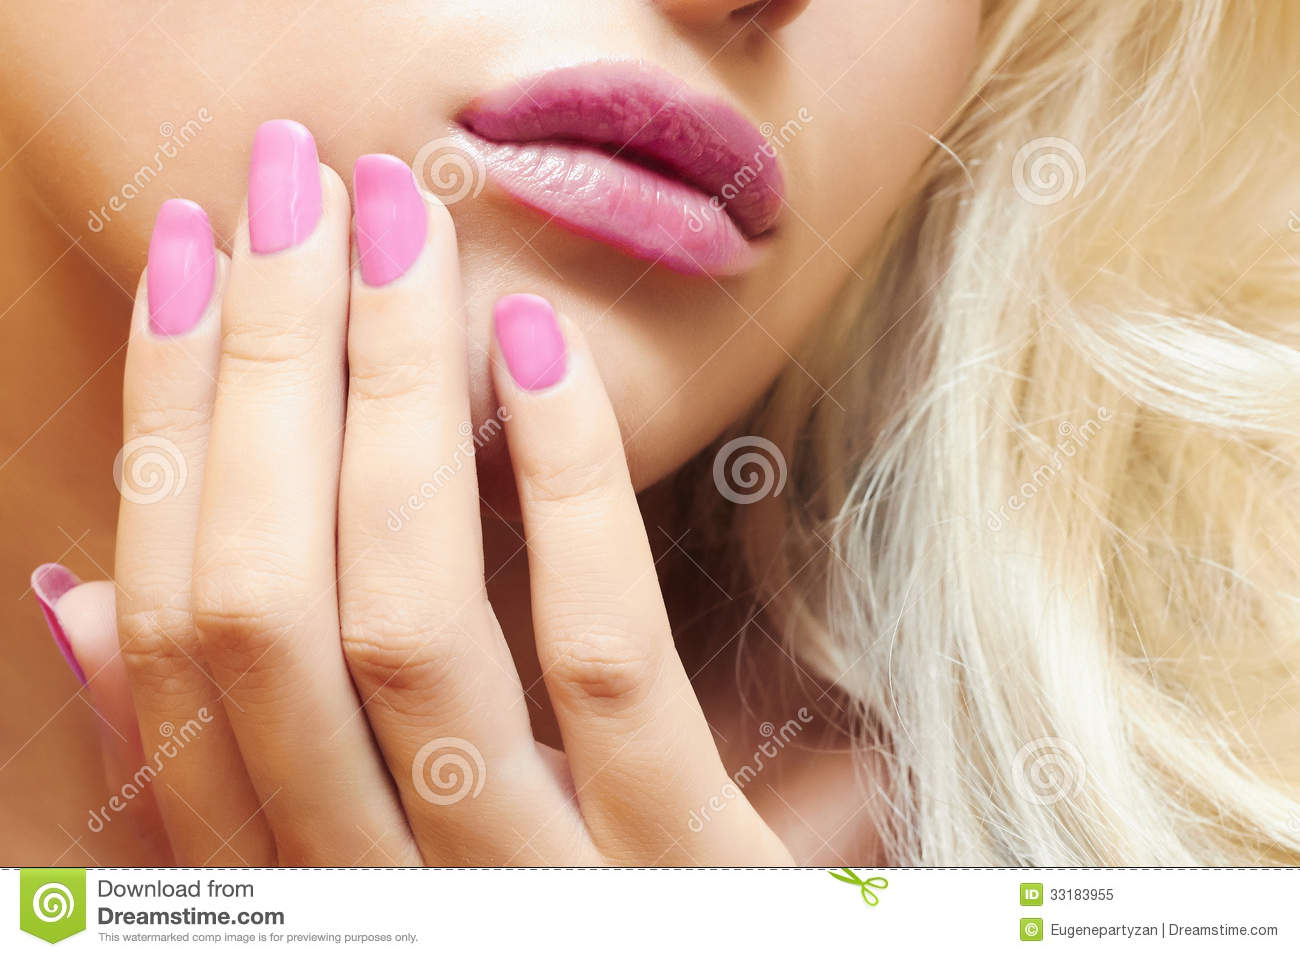 Lips,nails and hair of beautiful blond woman.